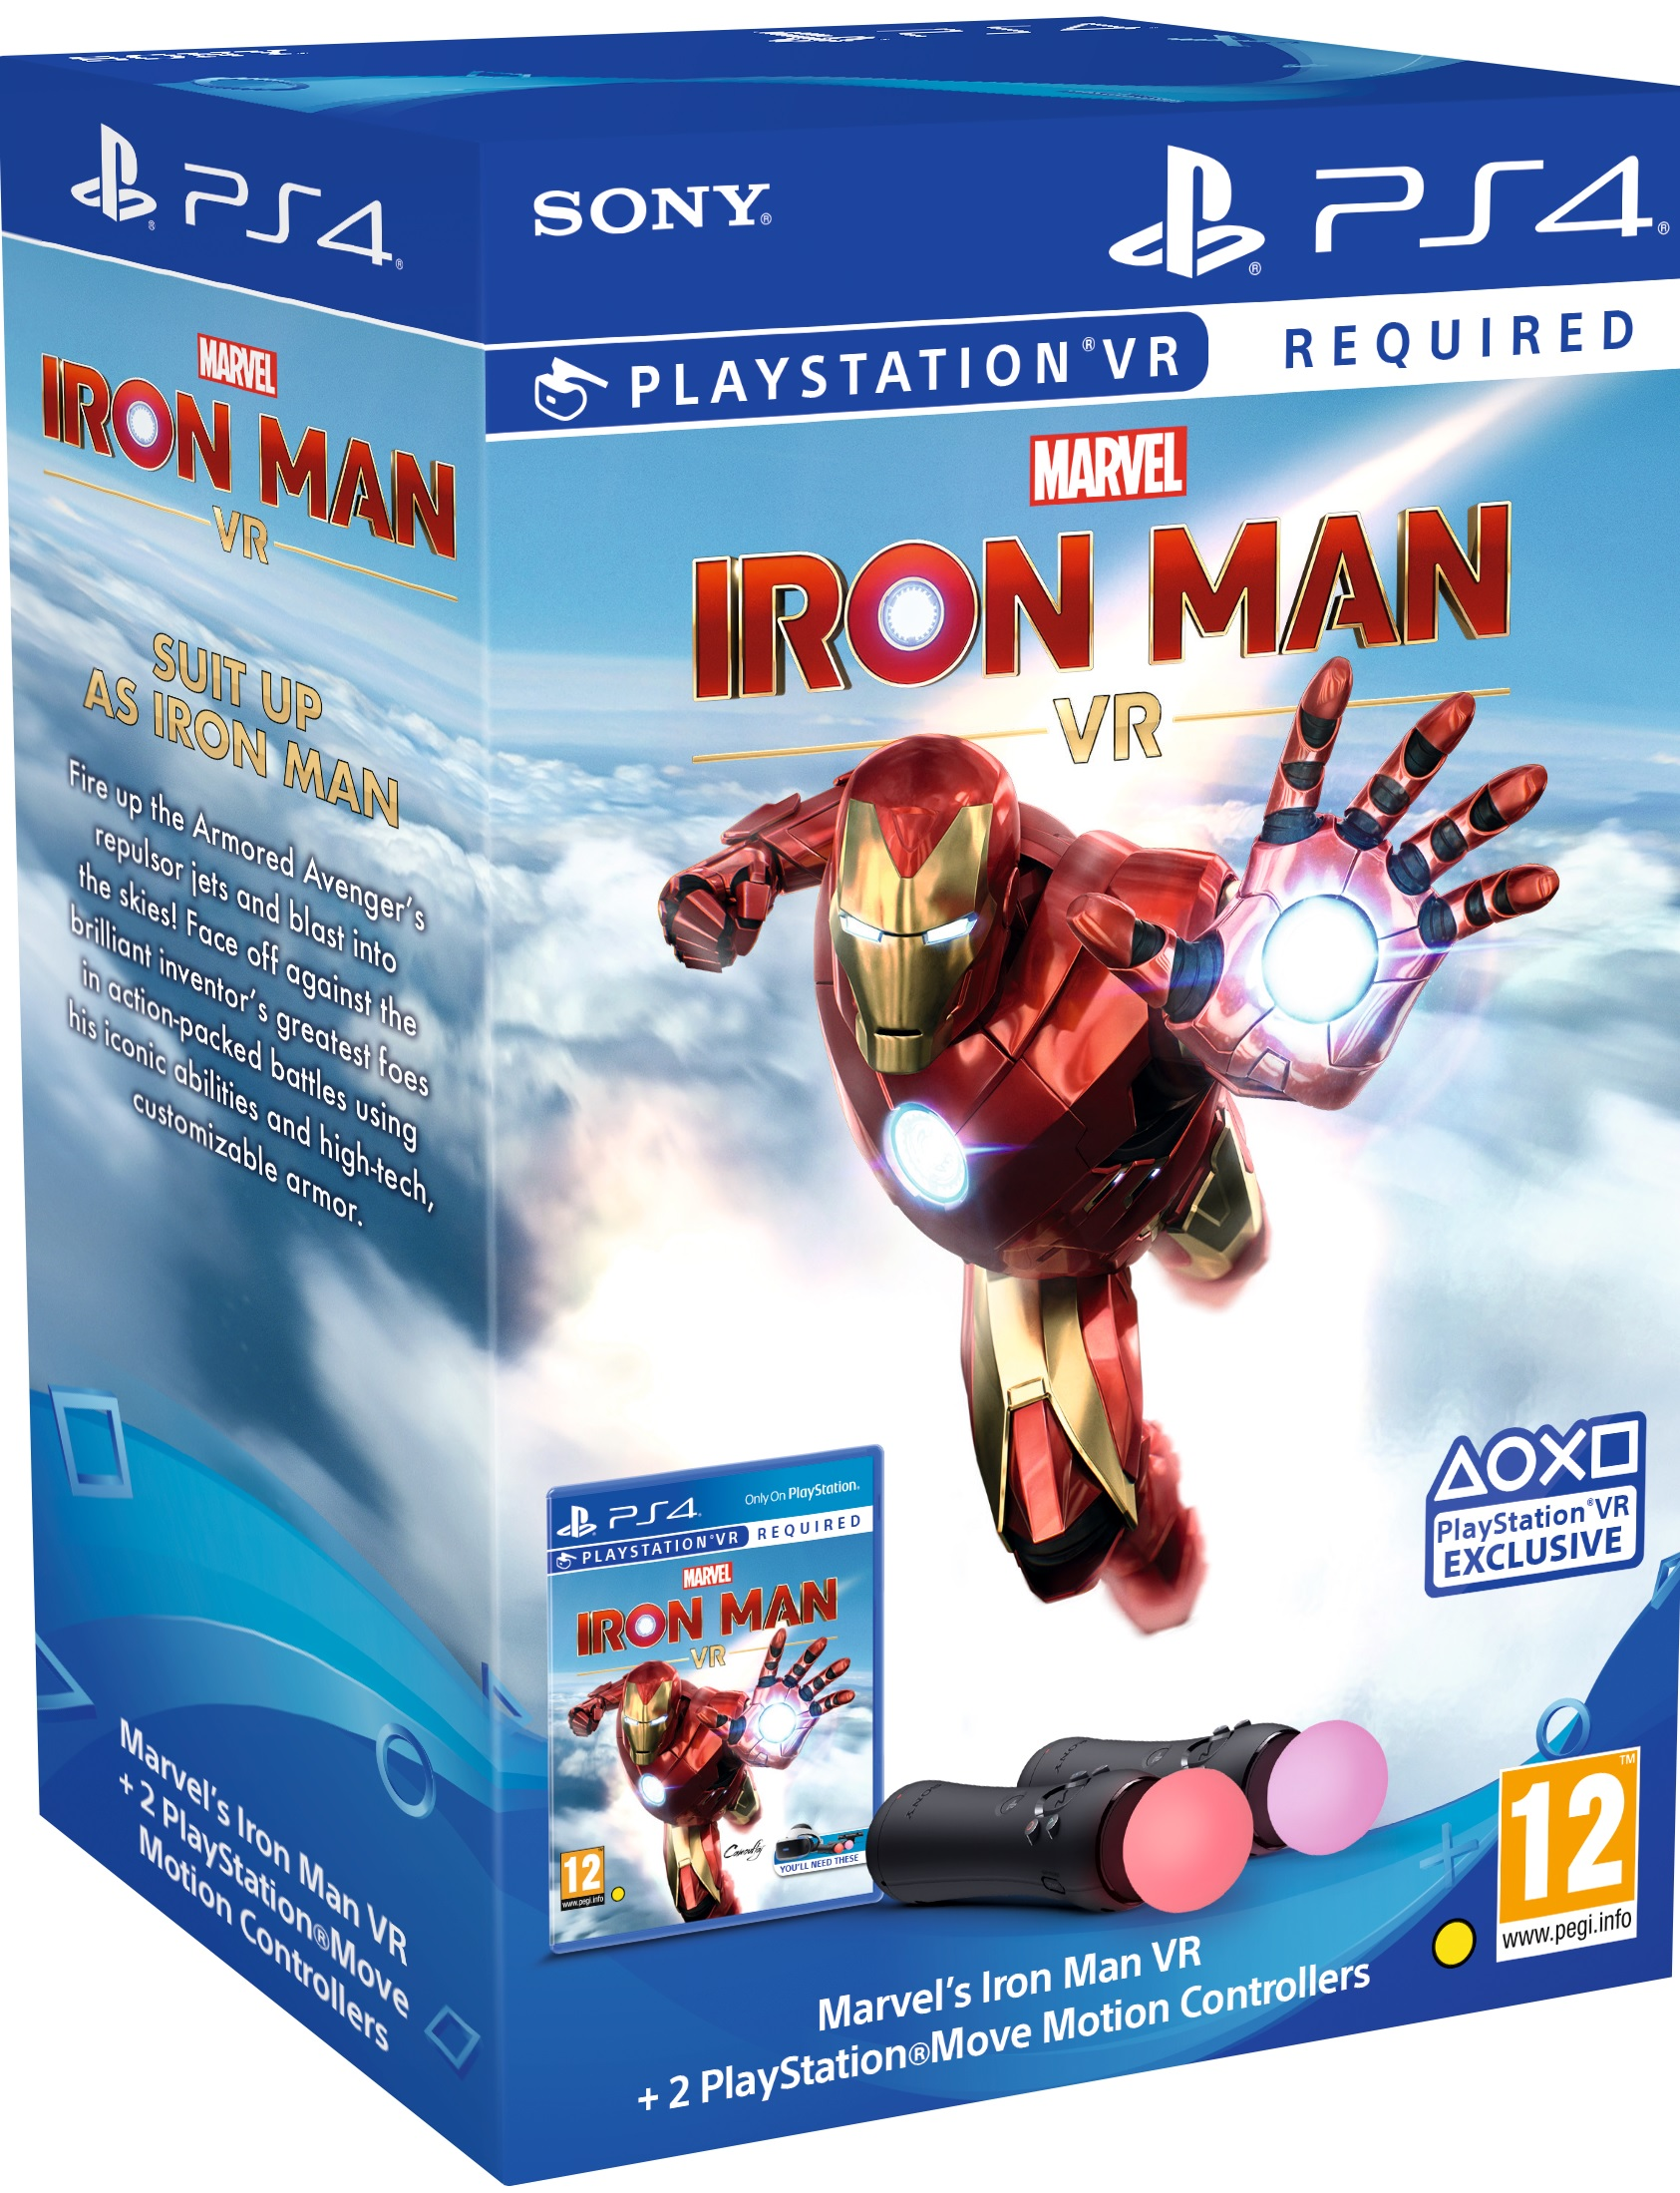 Sony Playstation VR Move Twin Pack + Marvels Iron Man VR Bundle